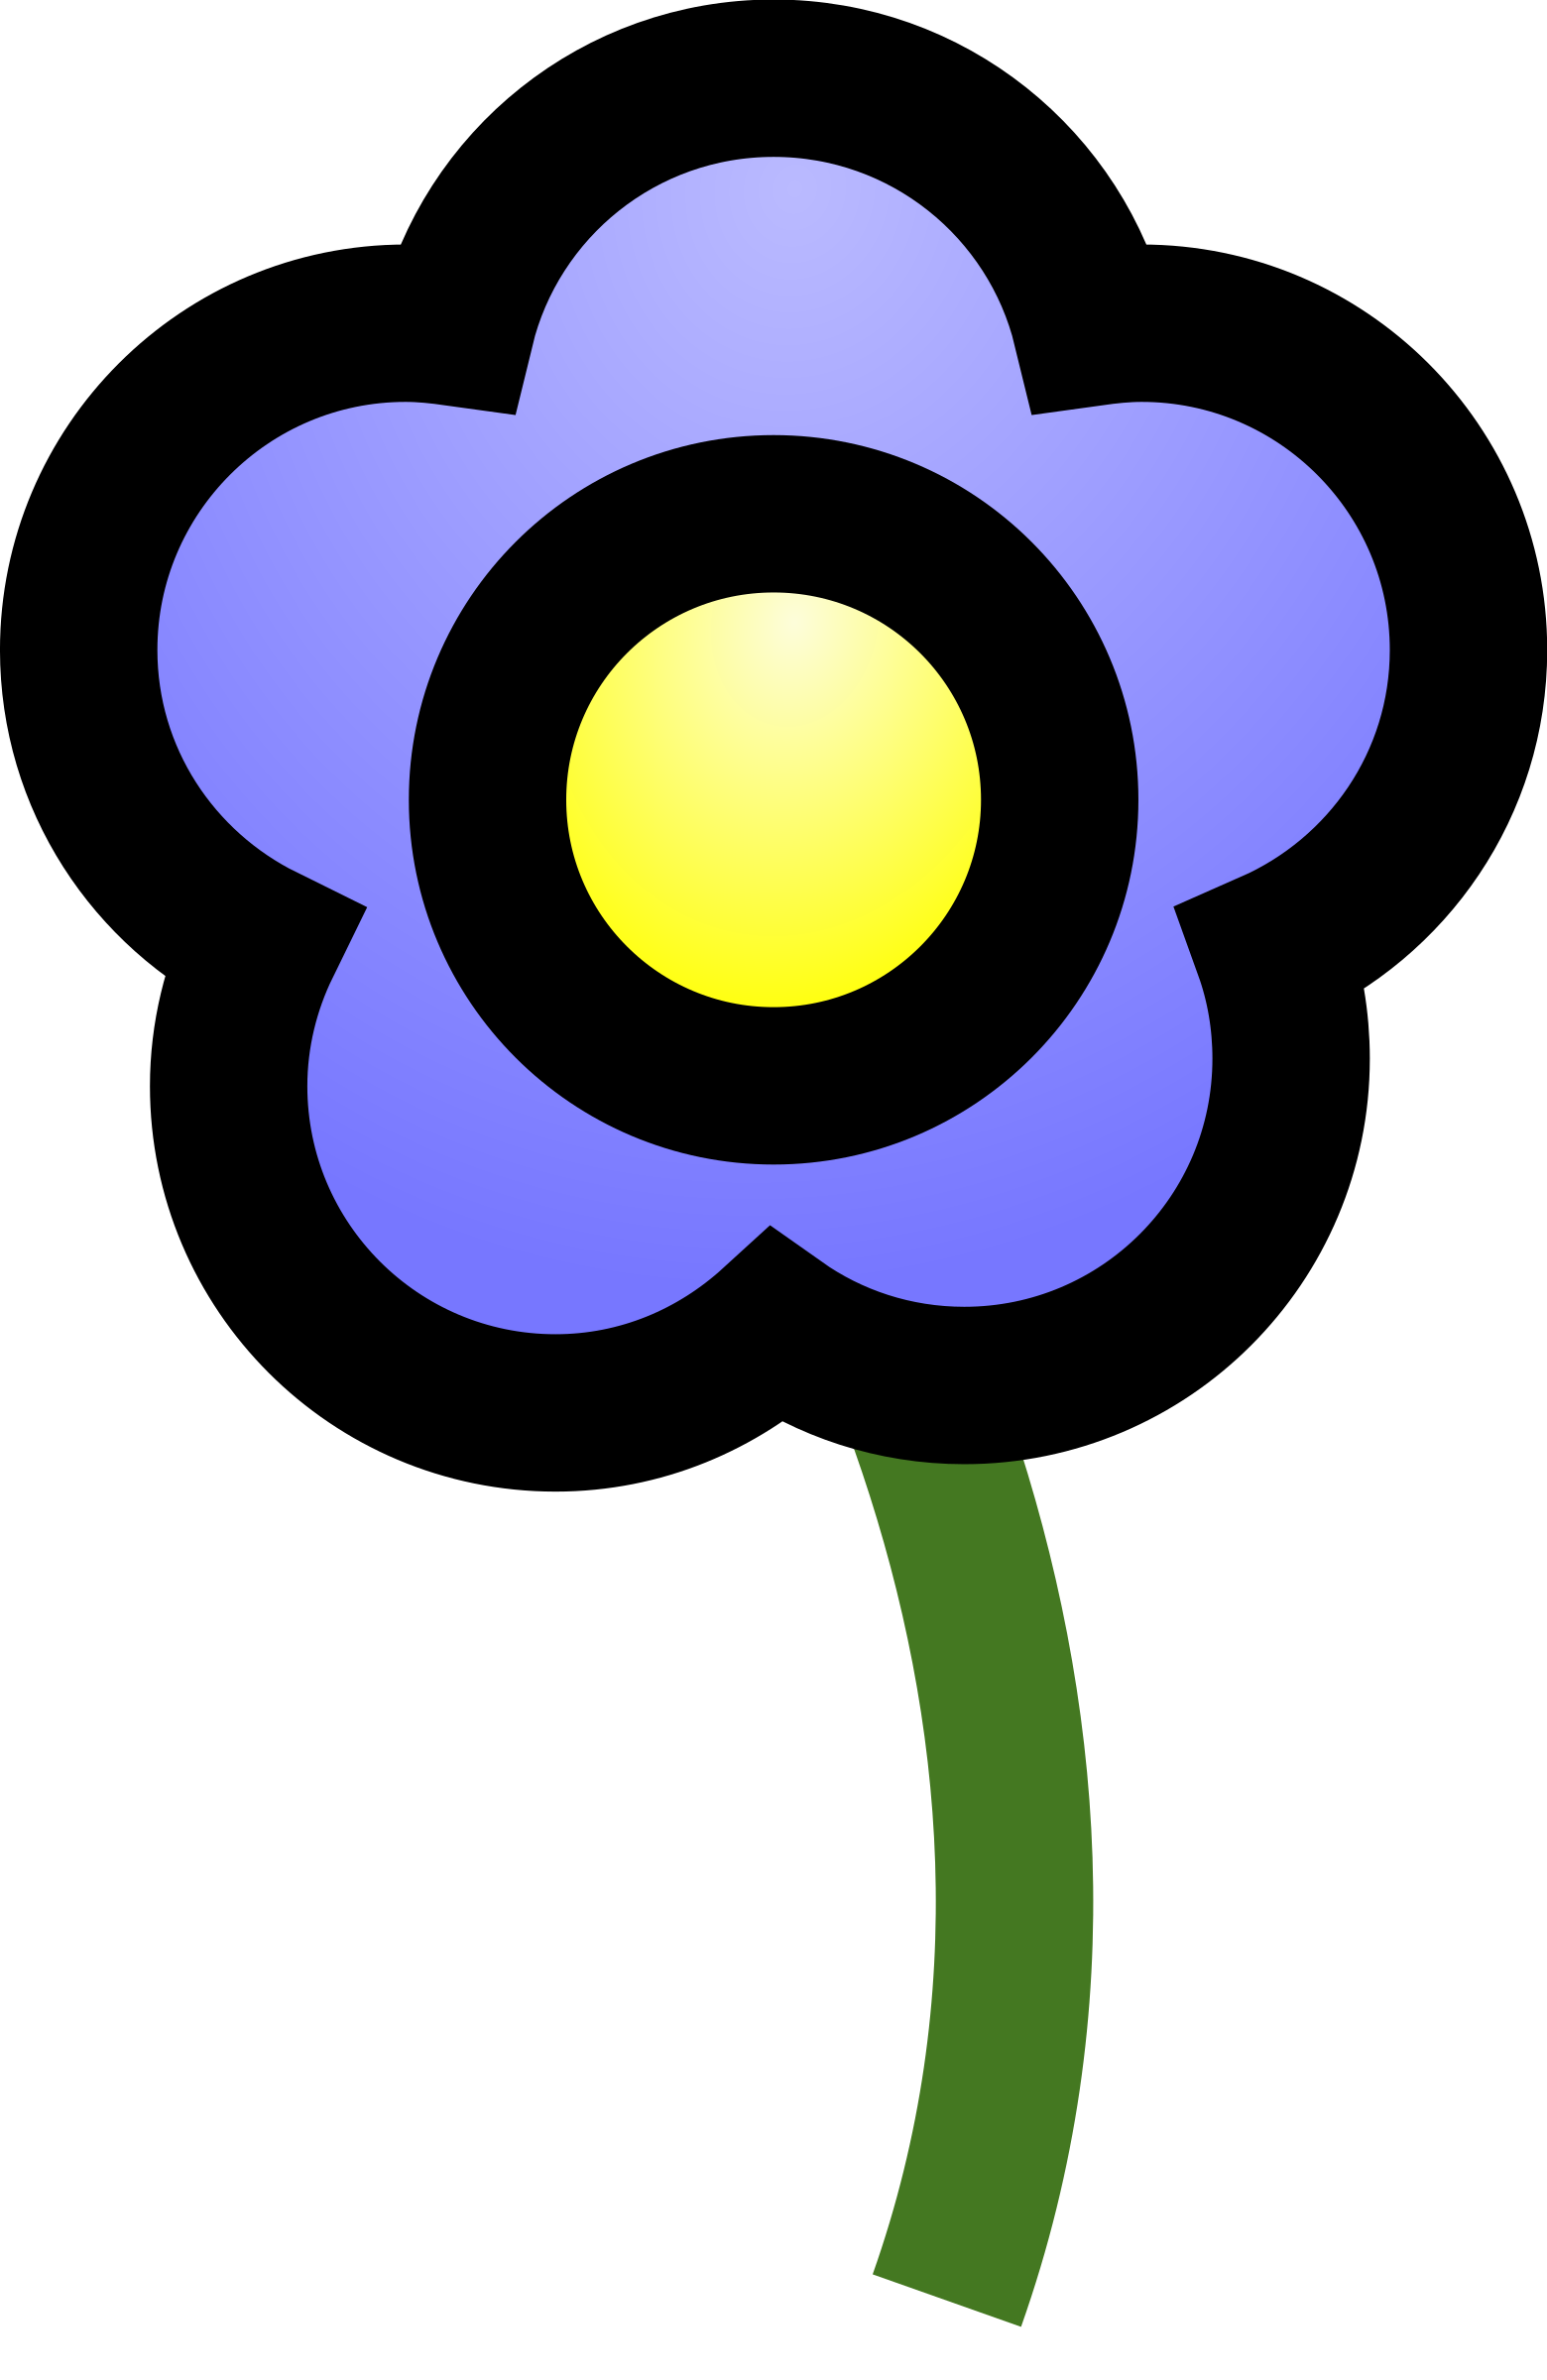 blue_flower by cie